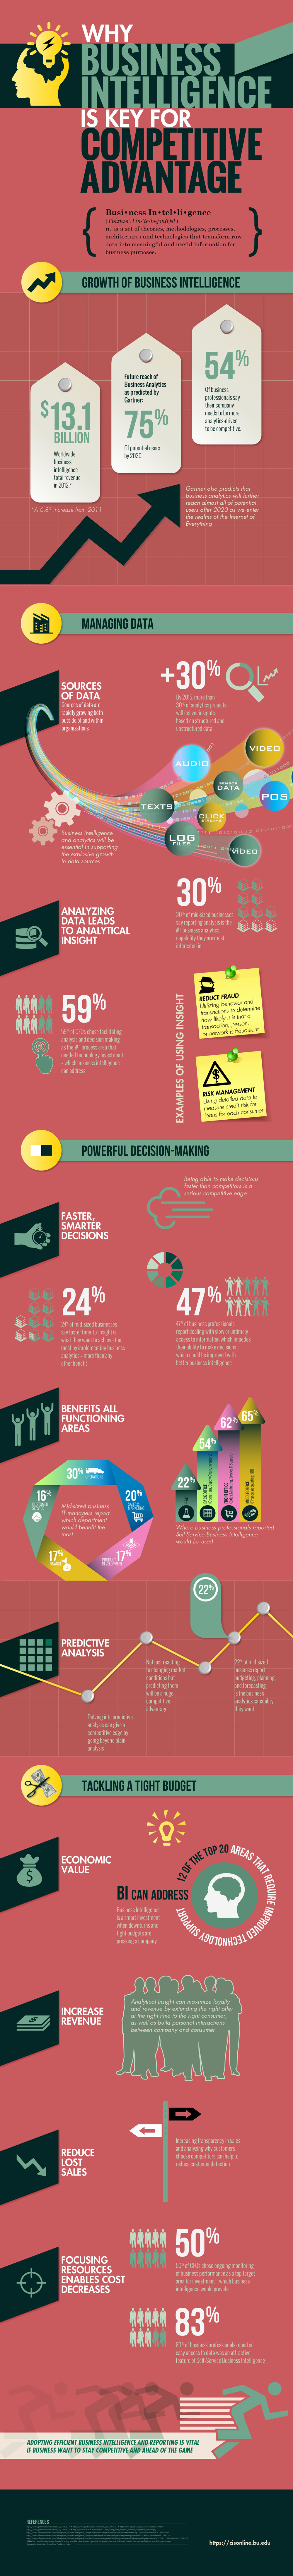 business intelligence competitive advantage infographic